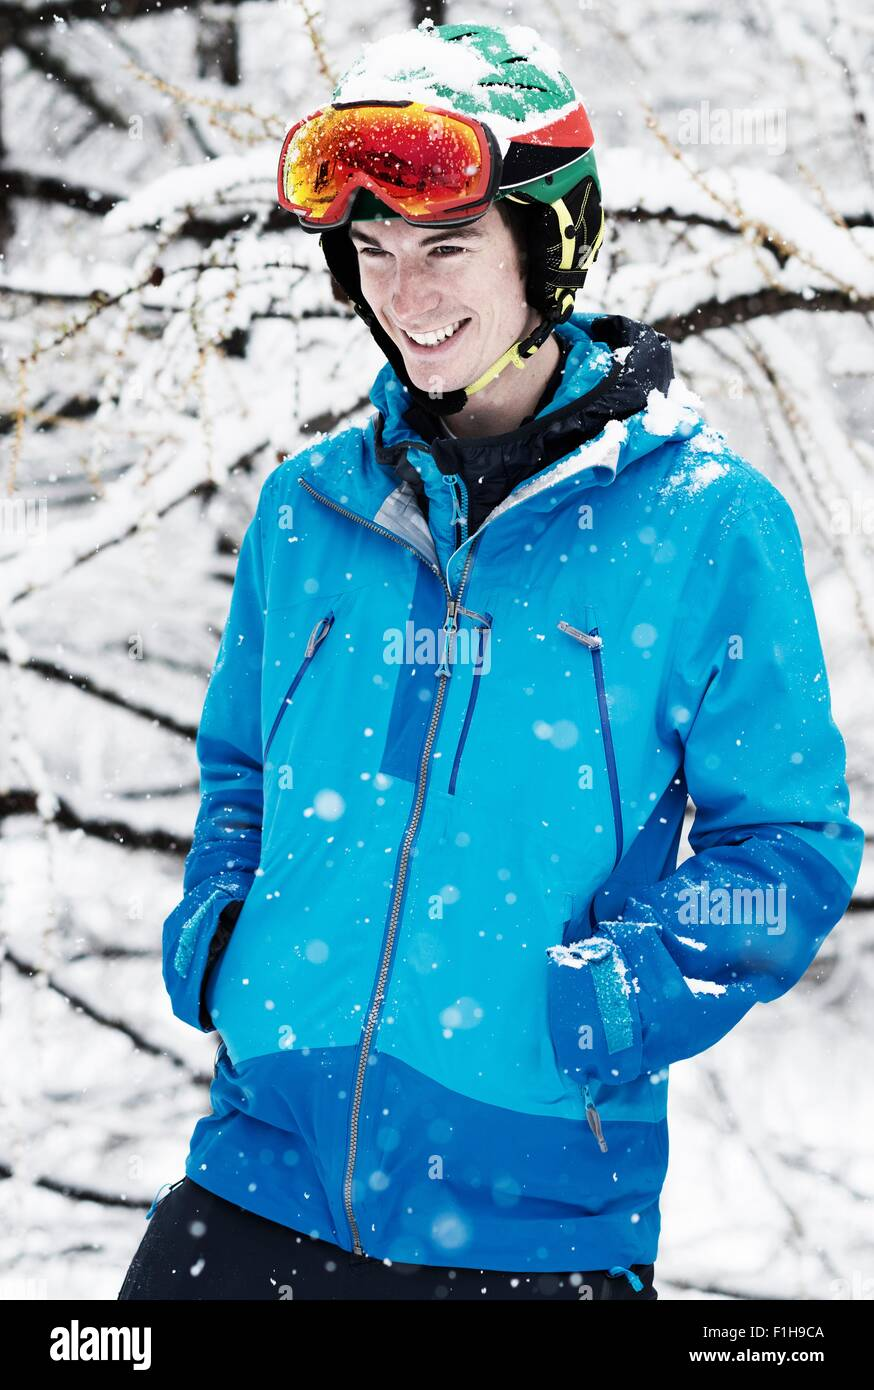 Young man wearing skiwear in snow, portrait - Stock Image